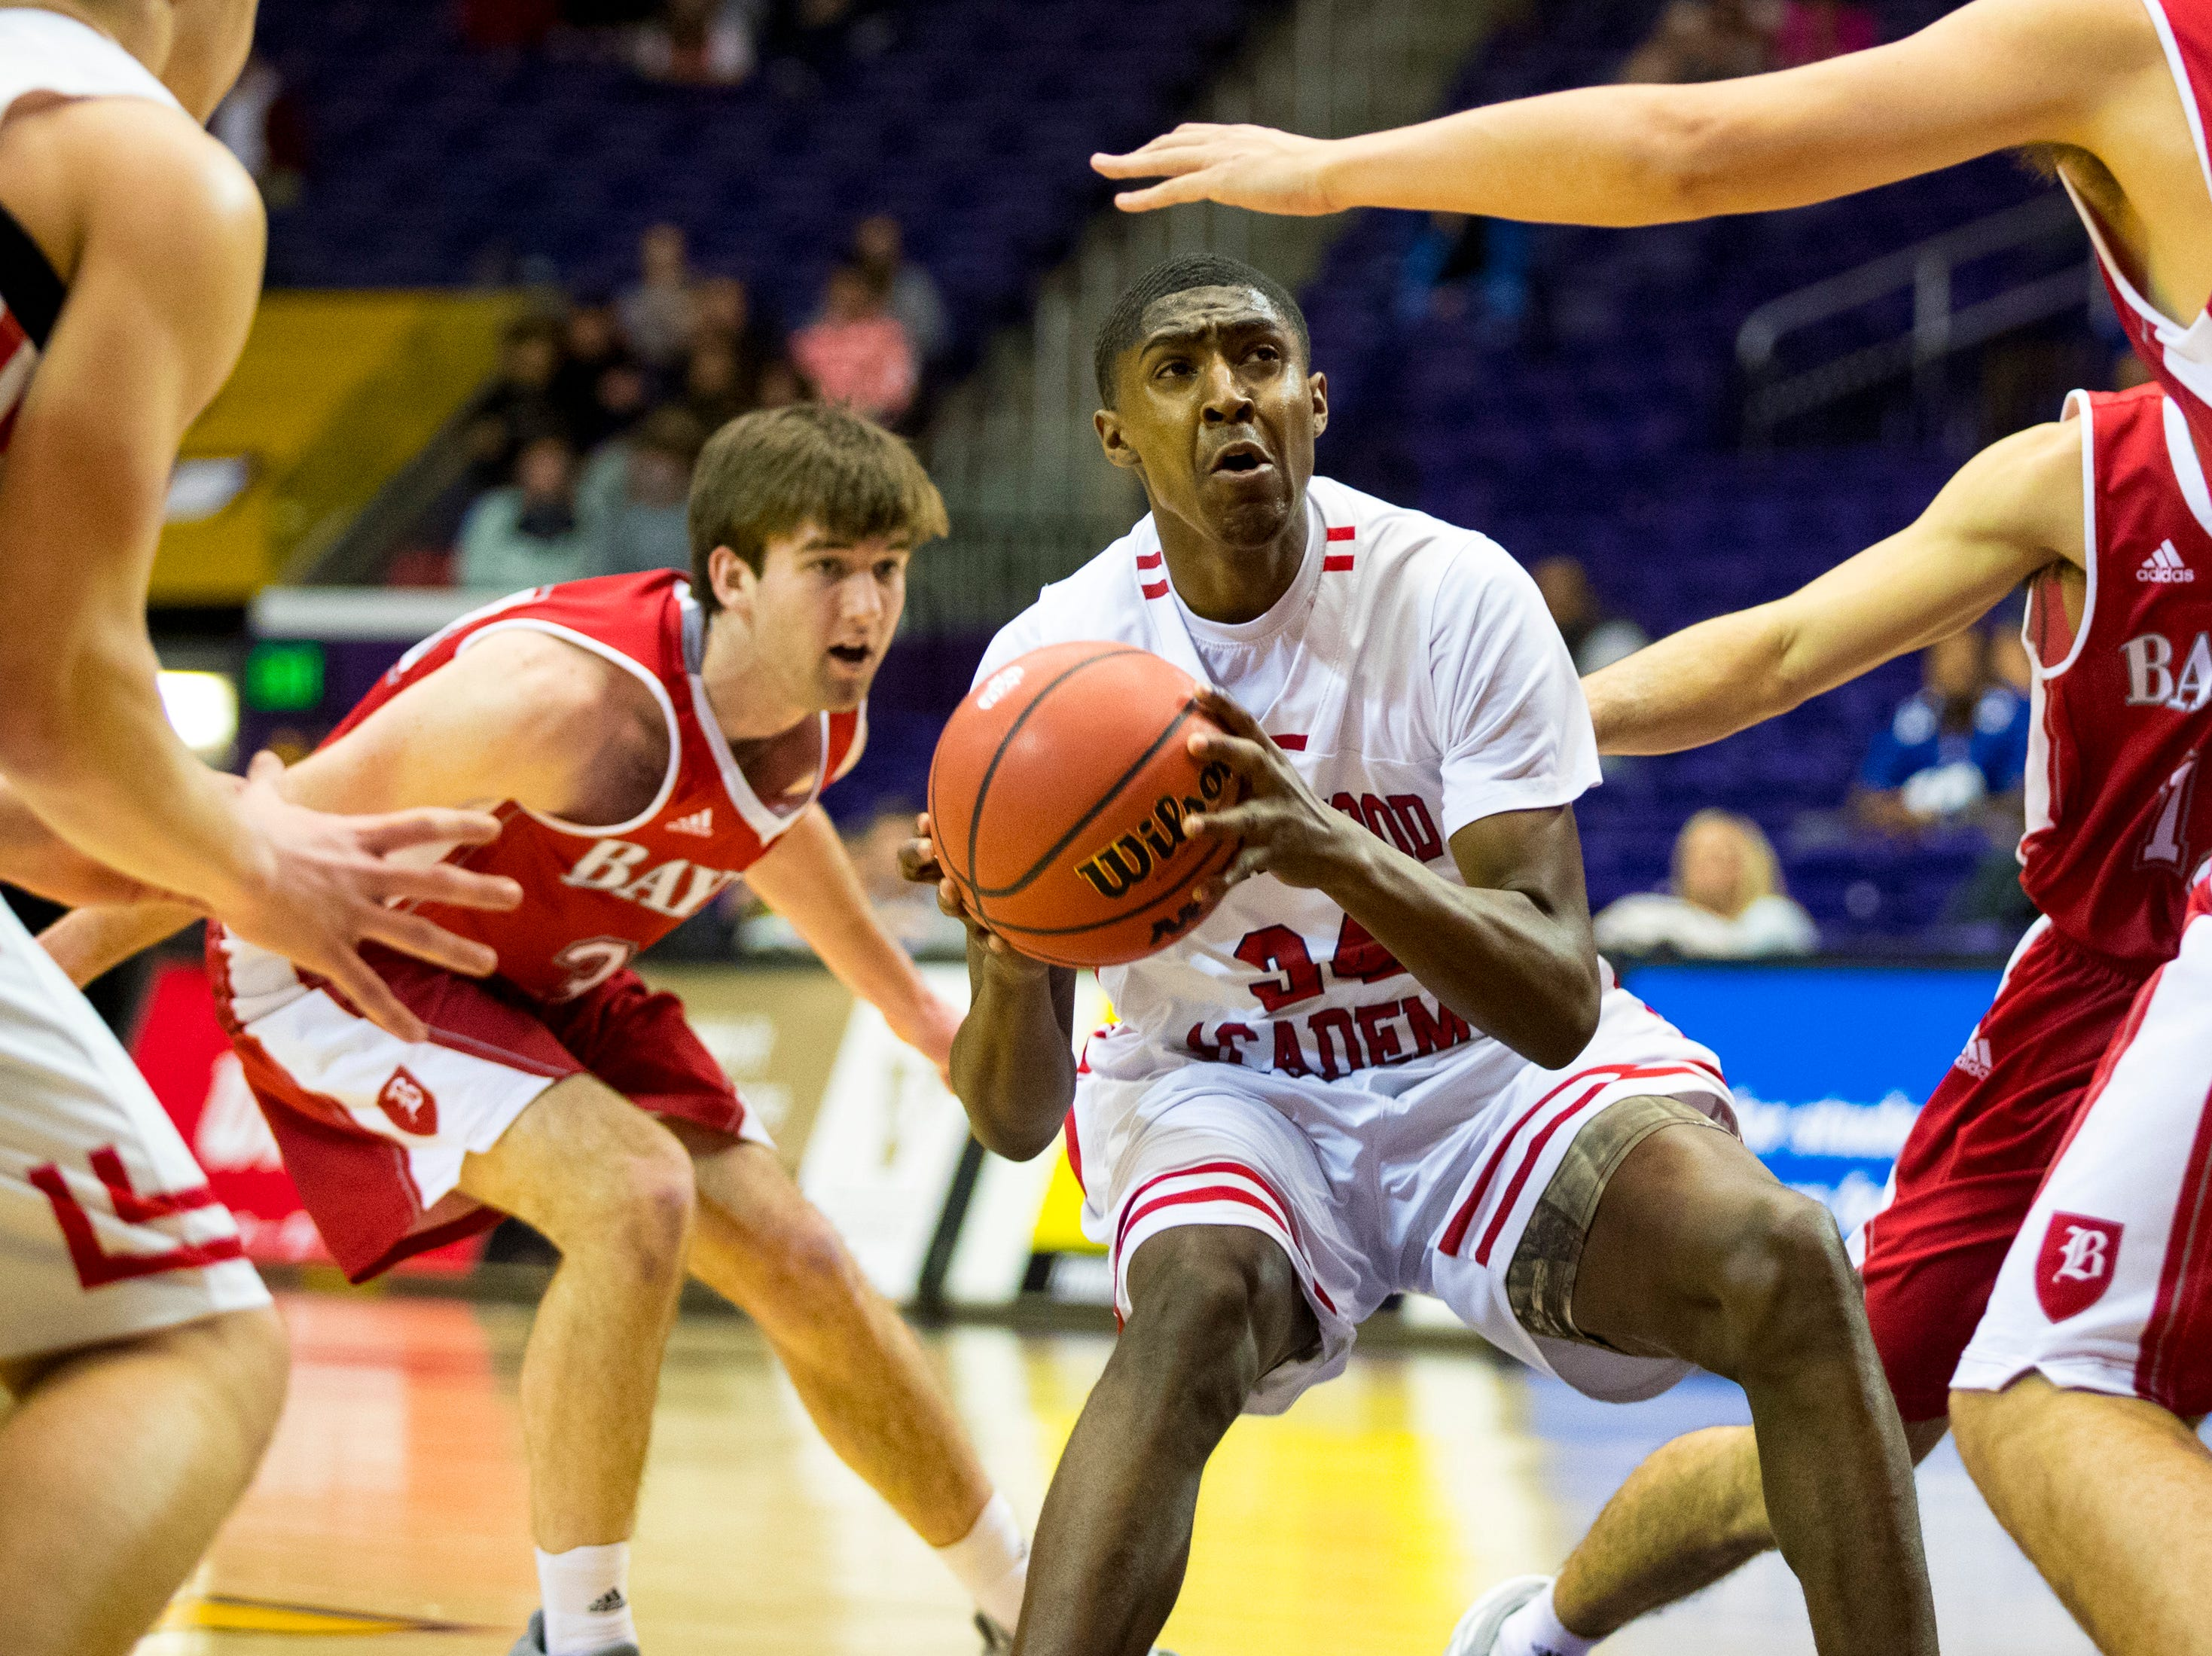 Brentwood Academy's Randy Brady (34) looks towards the basket during Brentwood Academy's game against Baylor in the semifinal round of the TSSAA Division II Class AA State Championships at Lipscomb University's Allen Arena in Nashville on Thursday, Feb. 28, 2019.